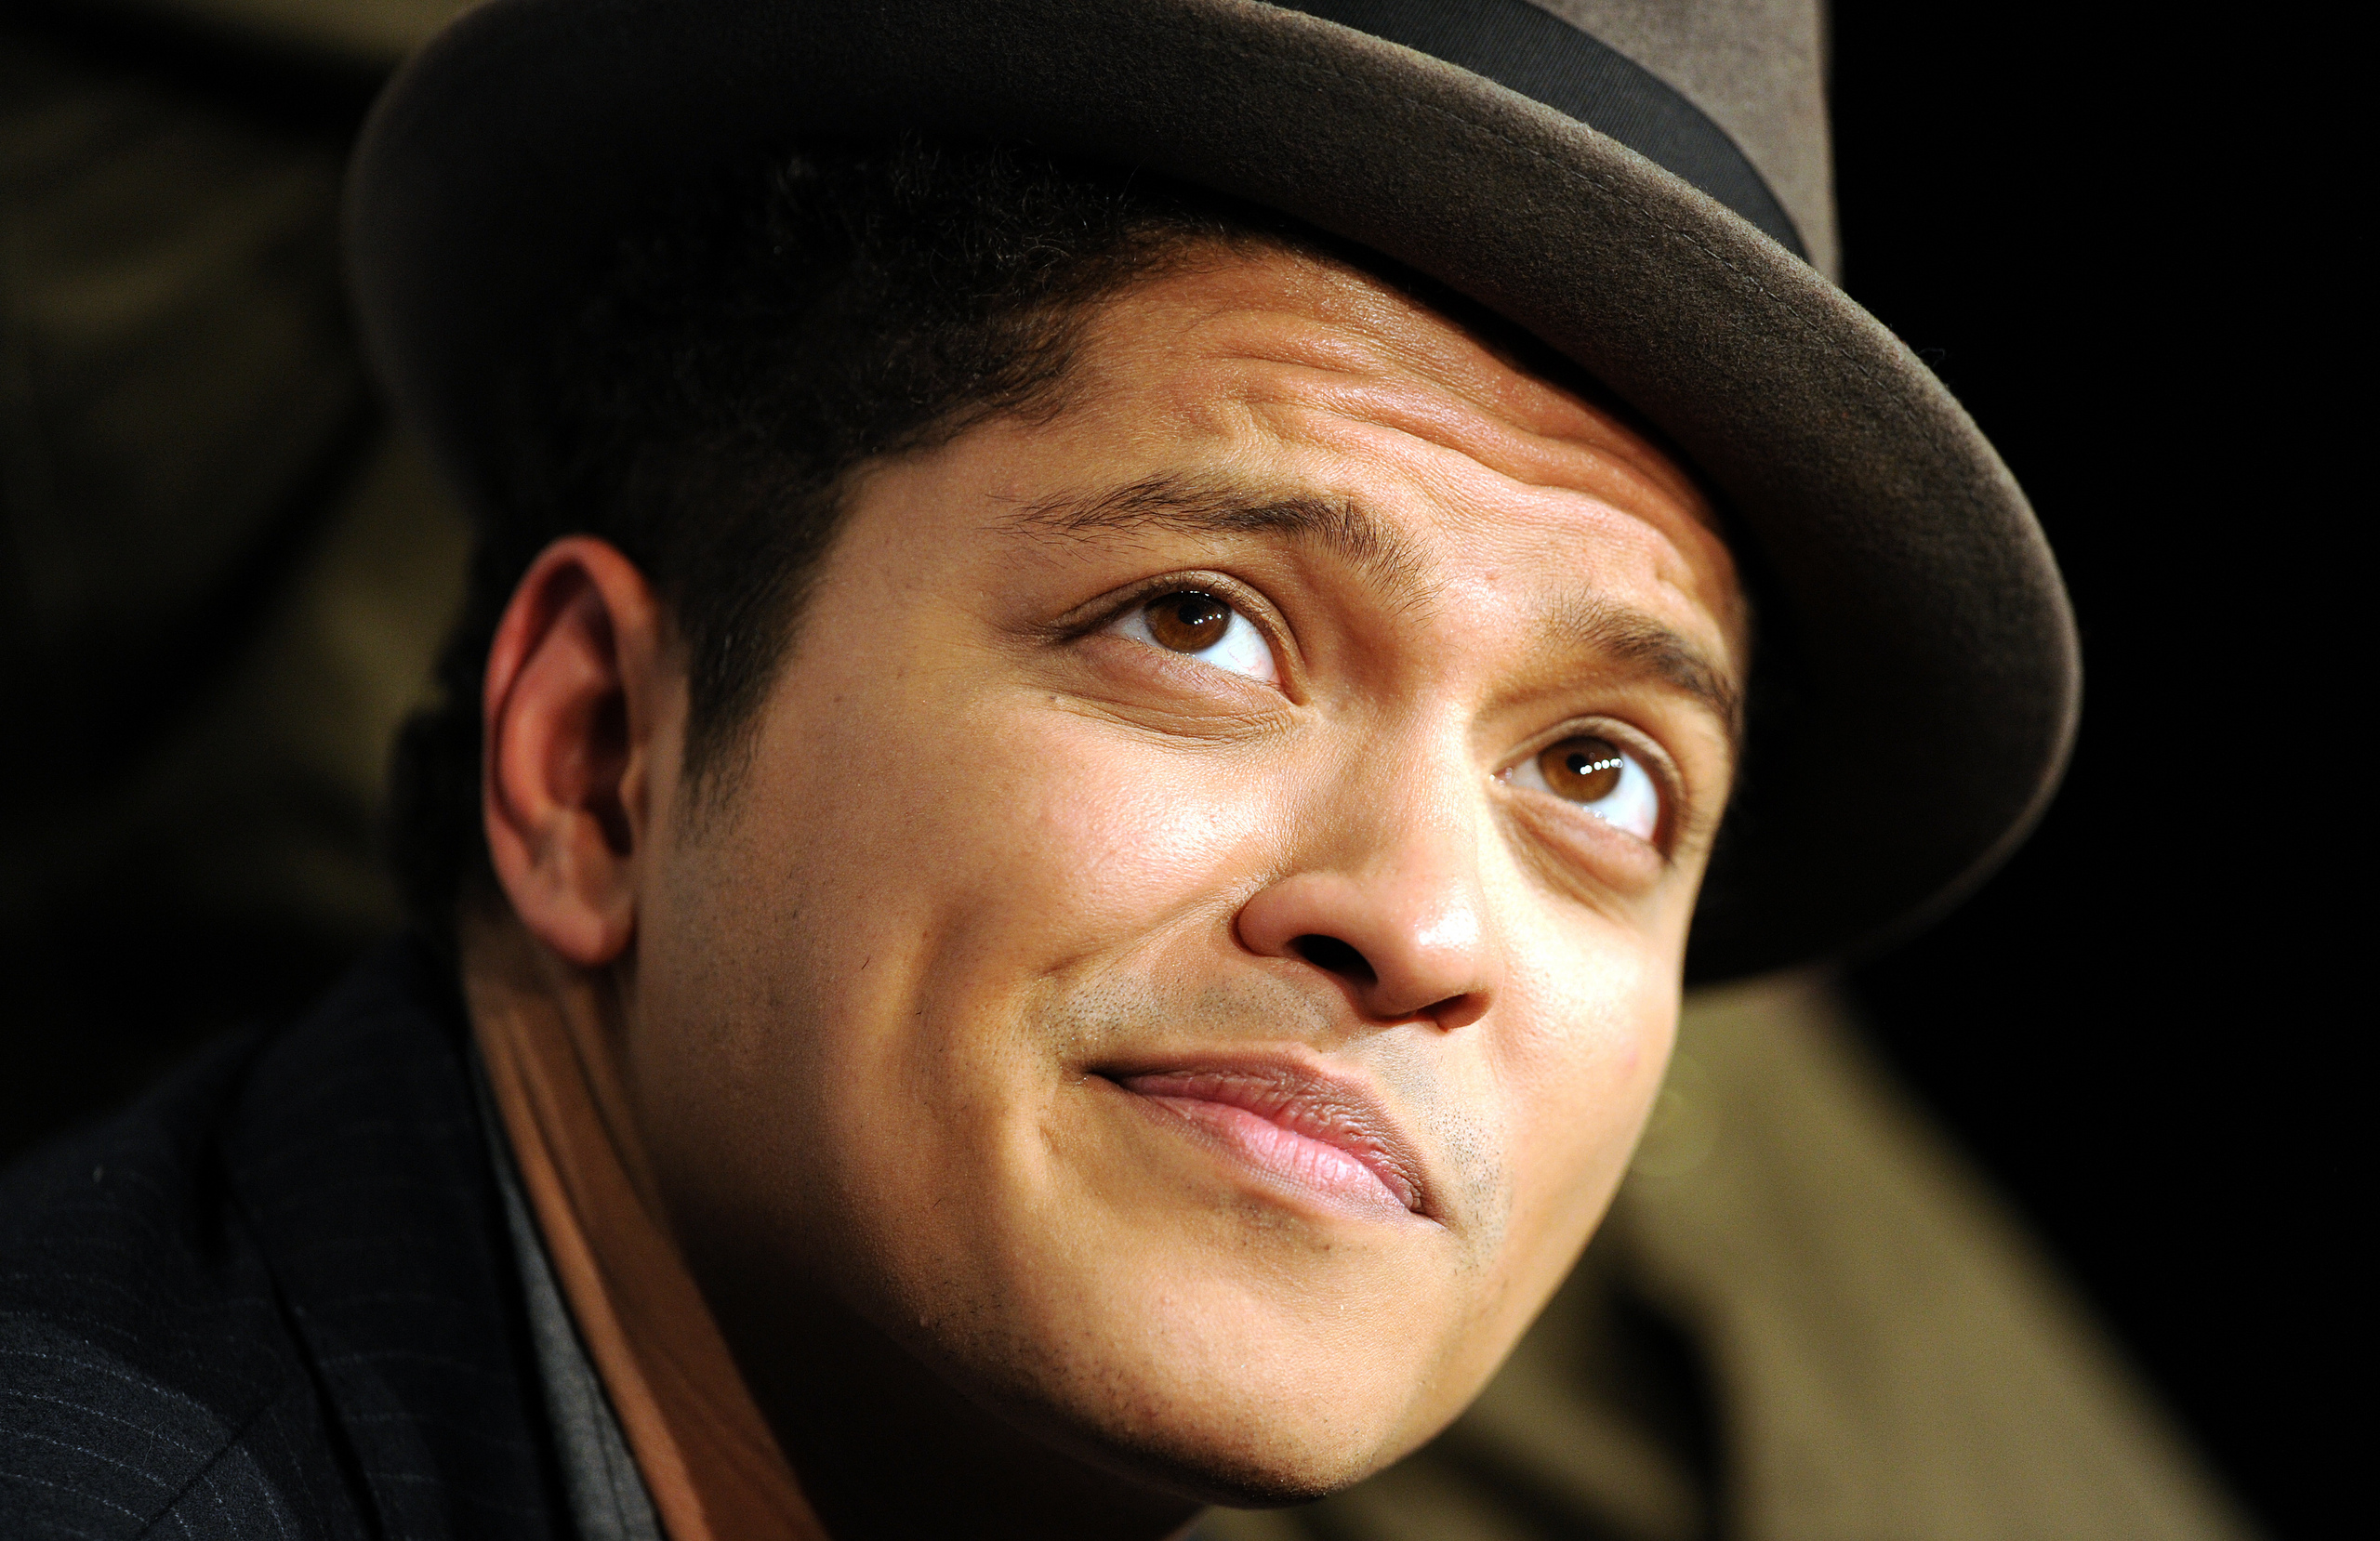 Bruno Mars HD Wallpaper & images